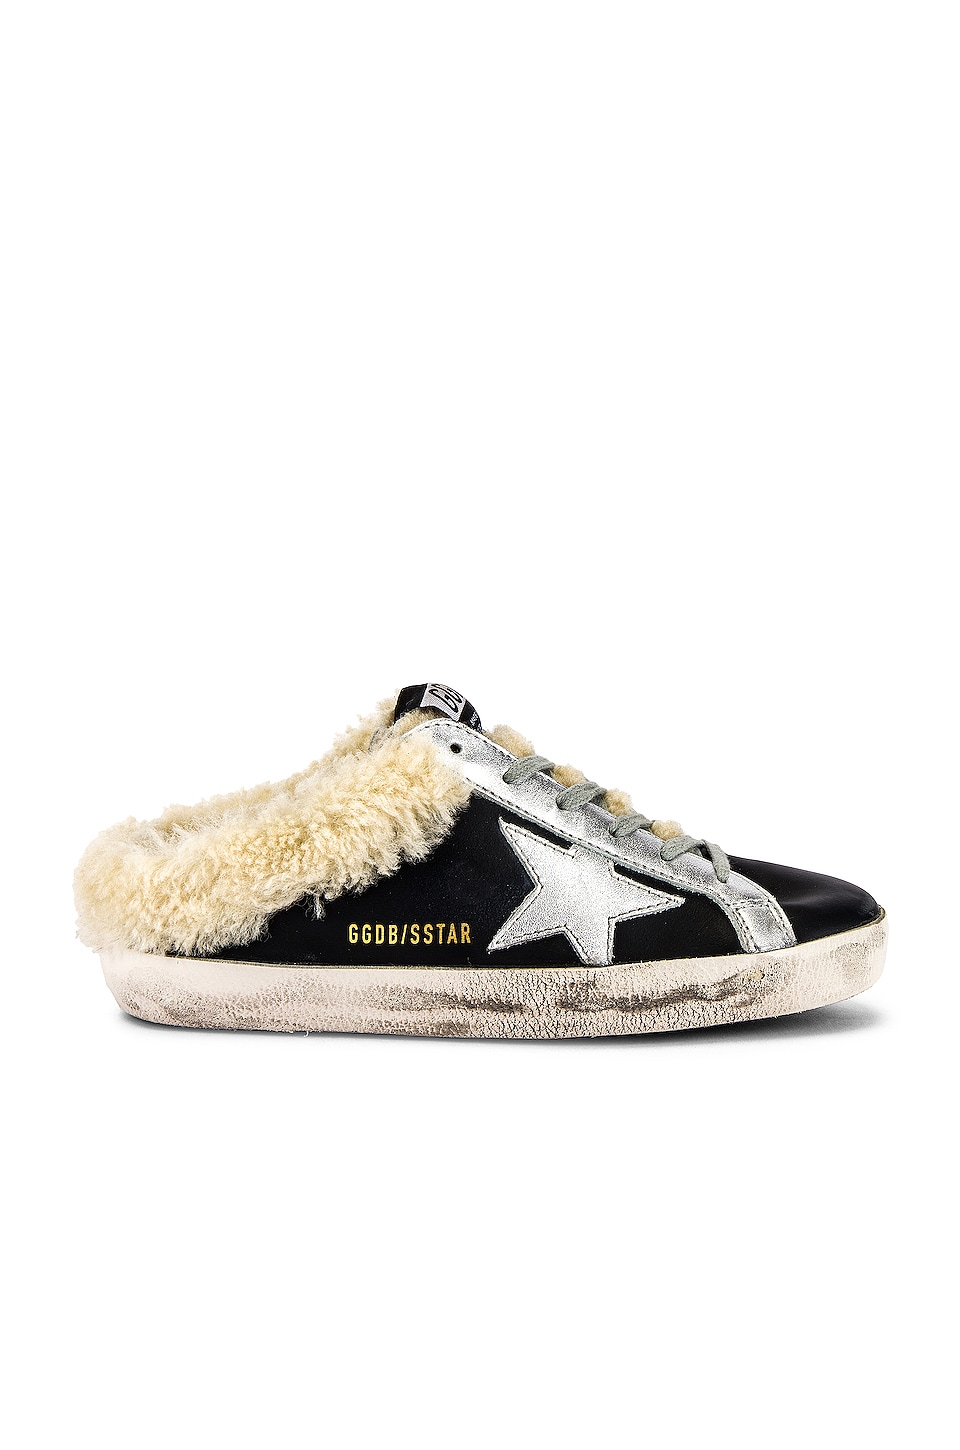 Golden Goose Sabot Superstar Sneaker in Black & Silver